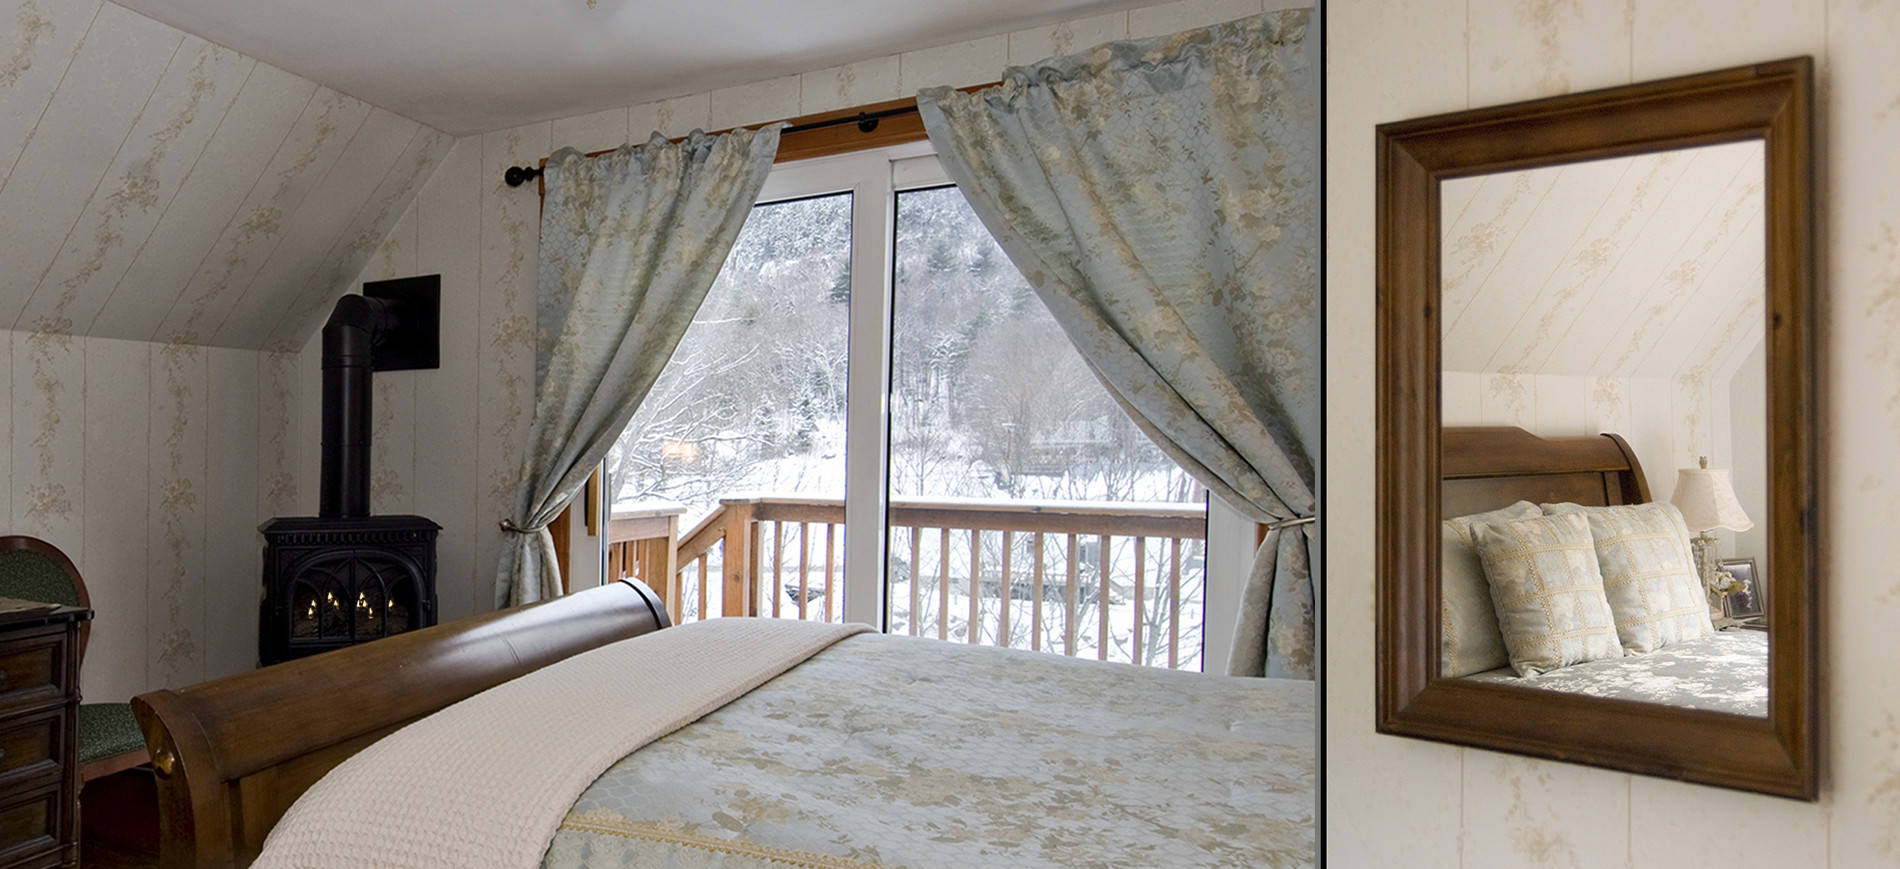 Guest room with chest & TV, chair, gas woodstove, sliding glass doors onto snowy balcony, queen bed with silver blue bedding reflected in mirror